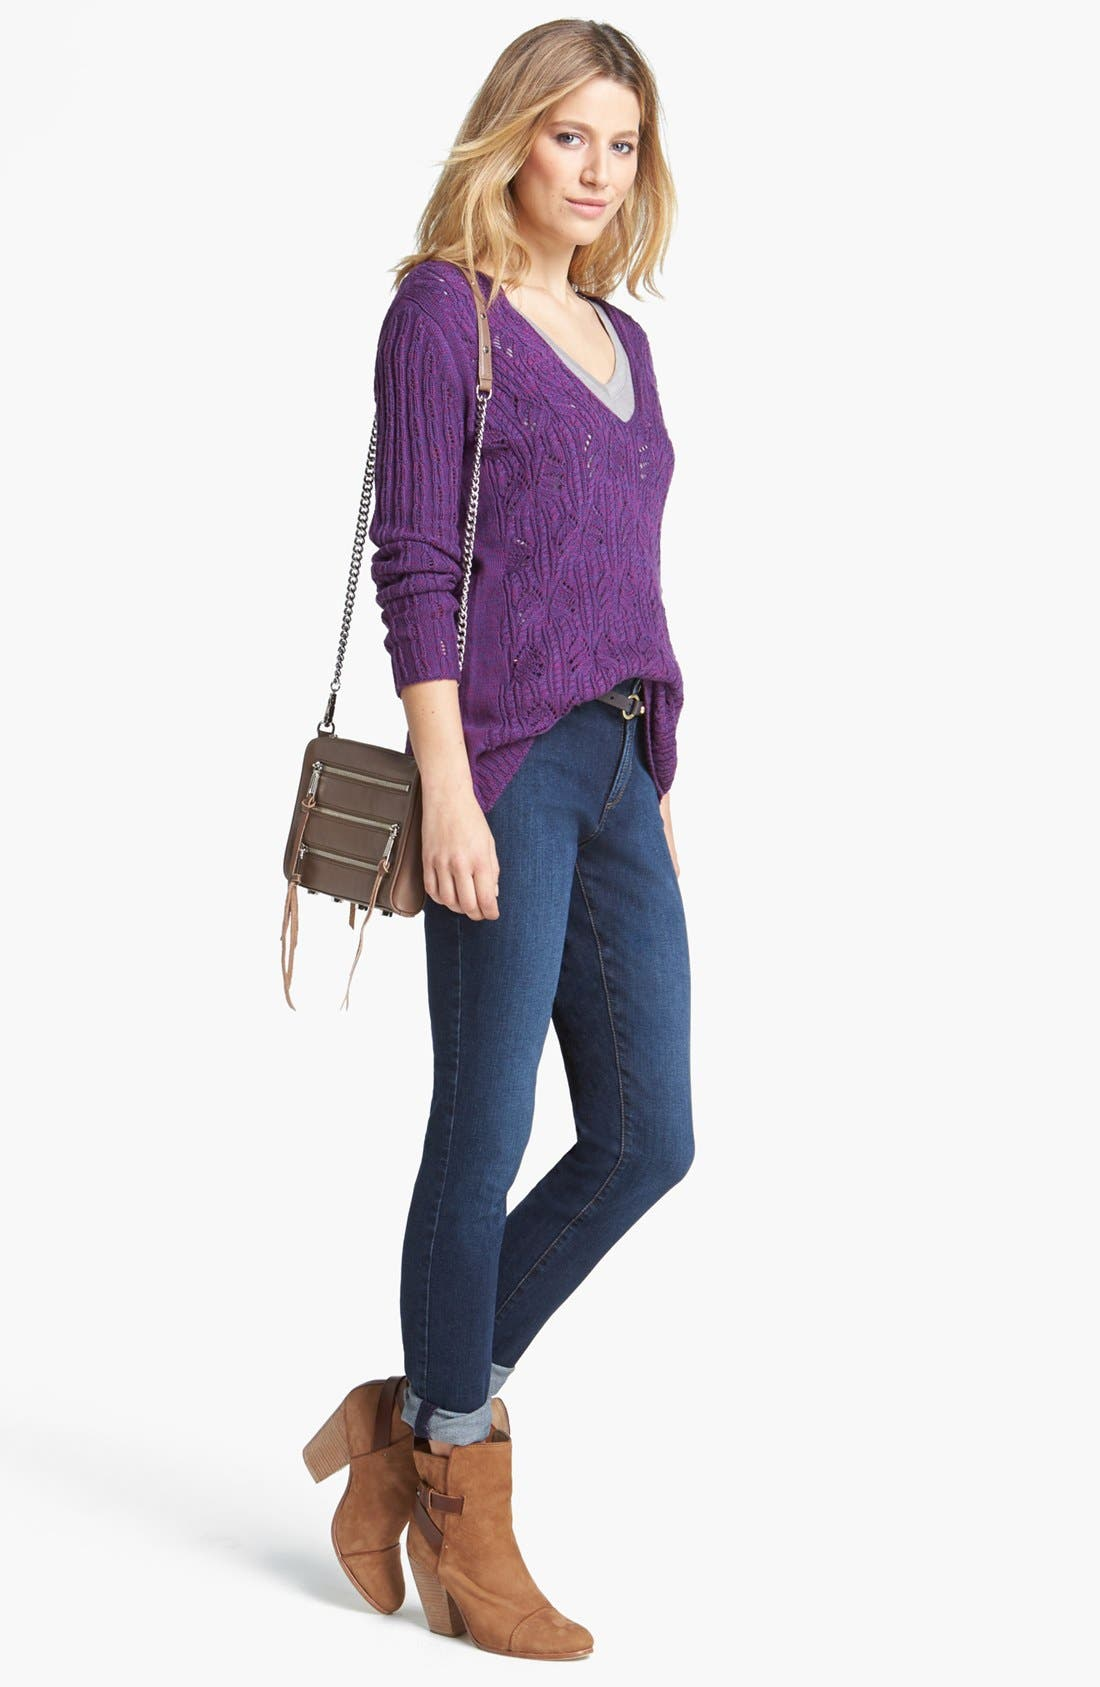 Alternate Image 1 Selected - Nic + Zoe Sweater & NYDJ Skinny Boyfriend Jeans